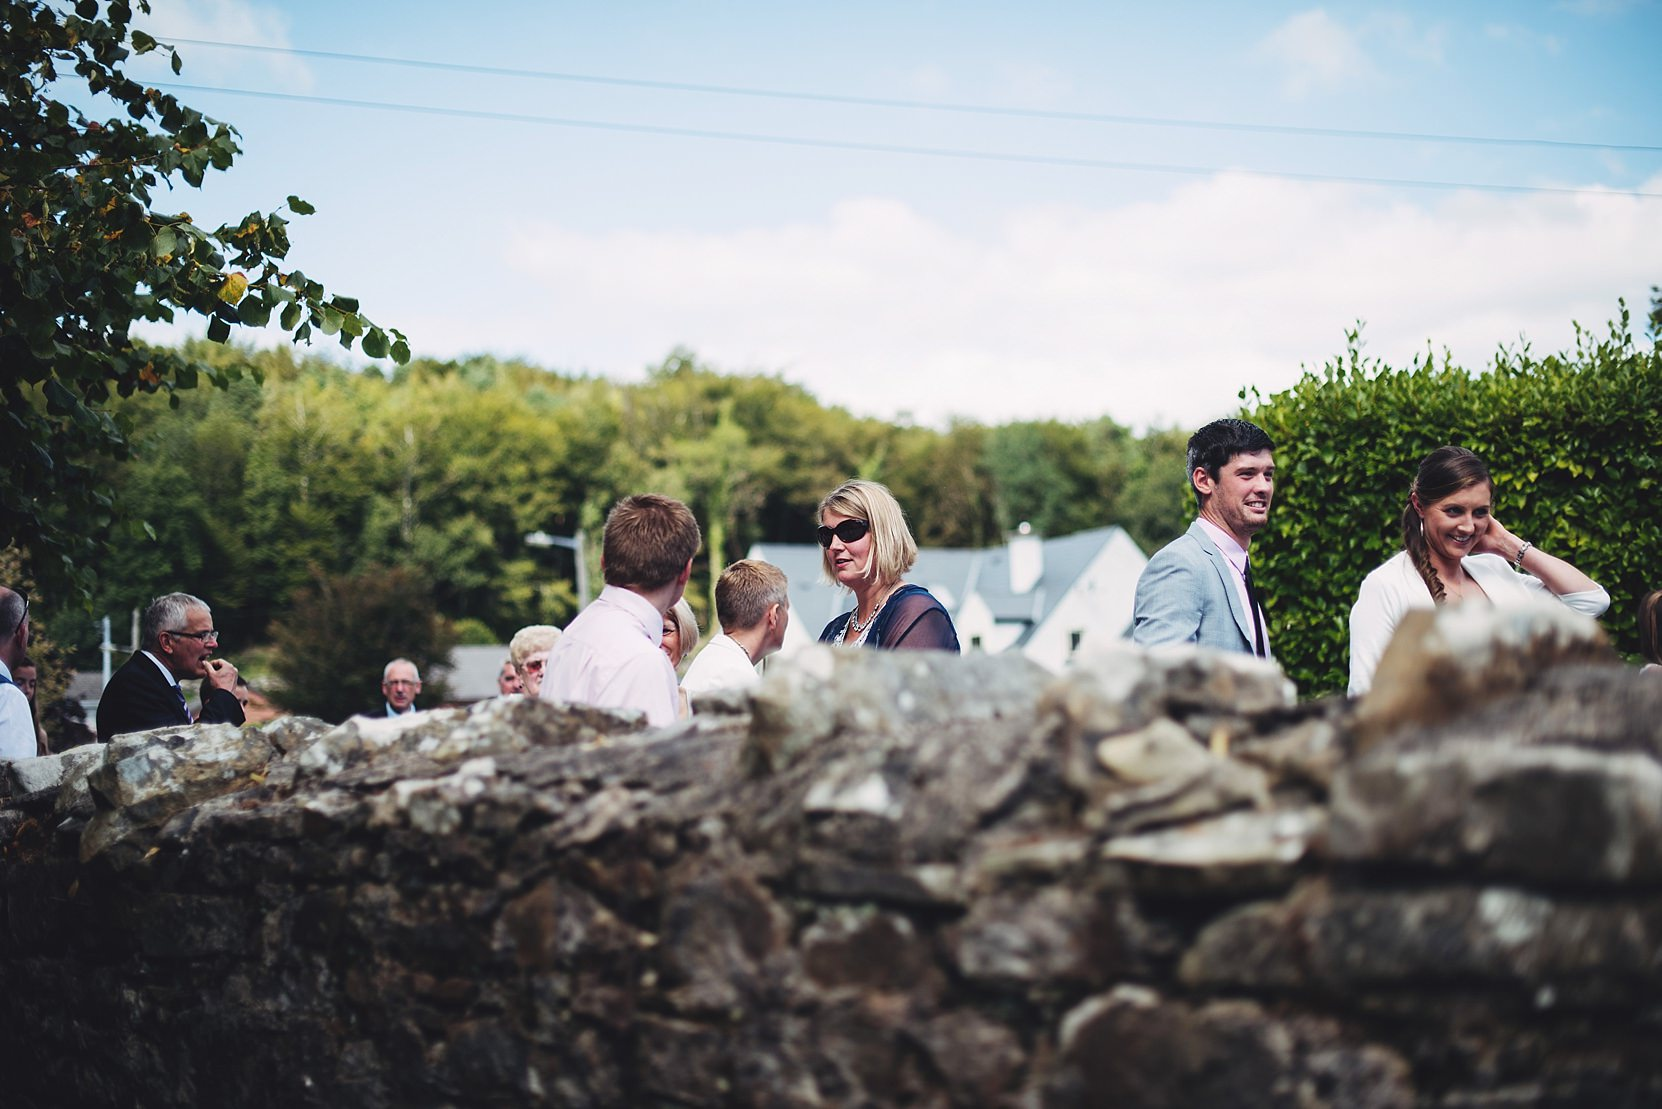 Guests outside a church at a wedding